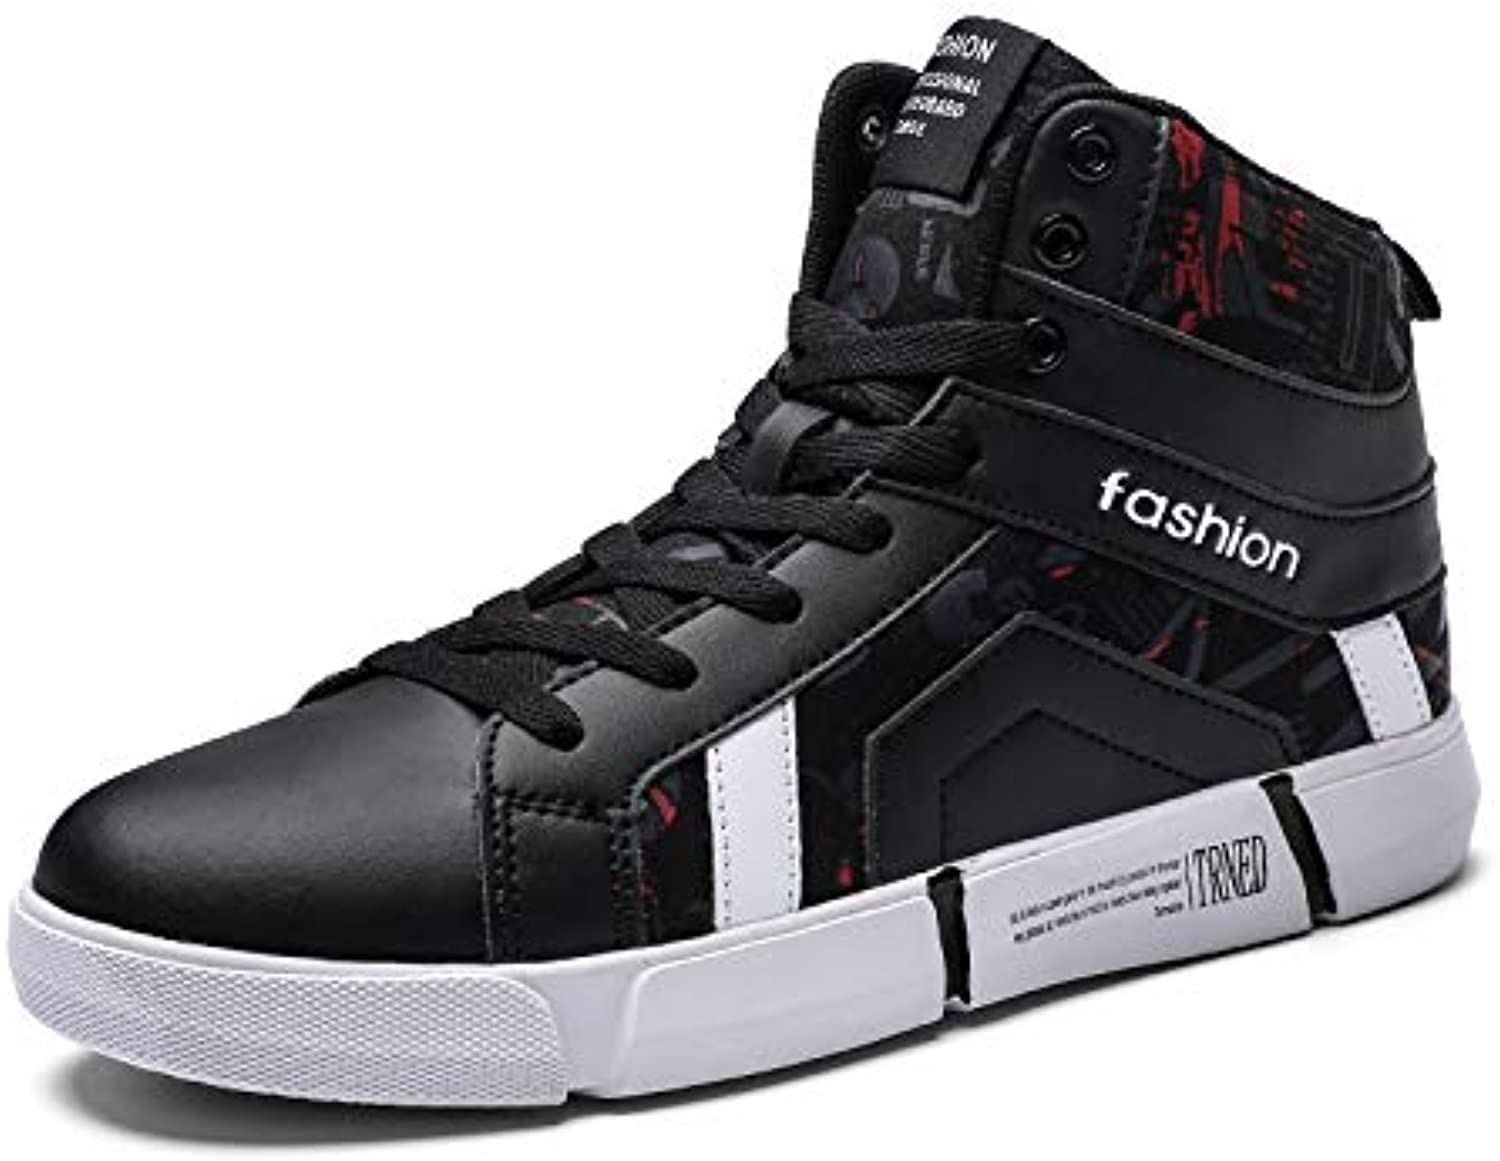 LOVDRAM Casual shoes Men'S shoes Autumn Men'S shoes Youth Fashion Wild Casual Sports Tide Autumn And Winter